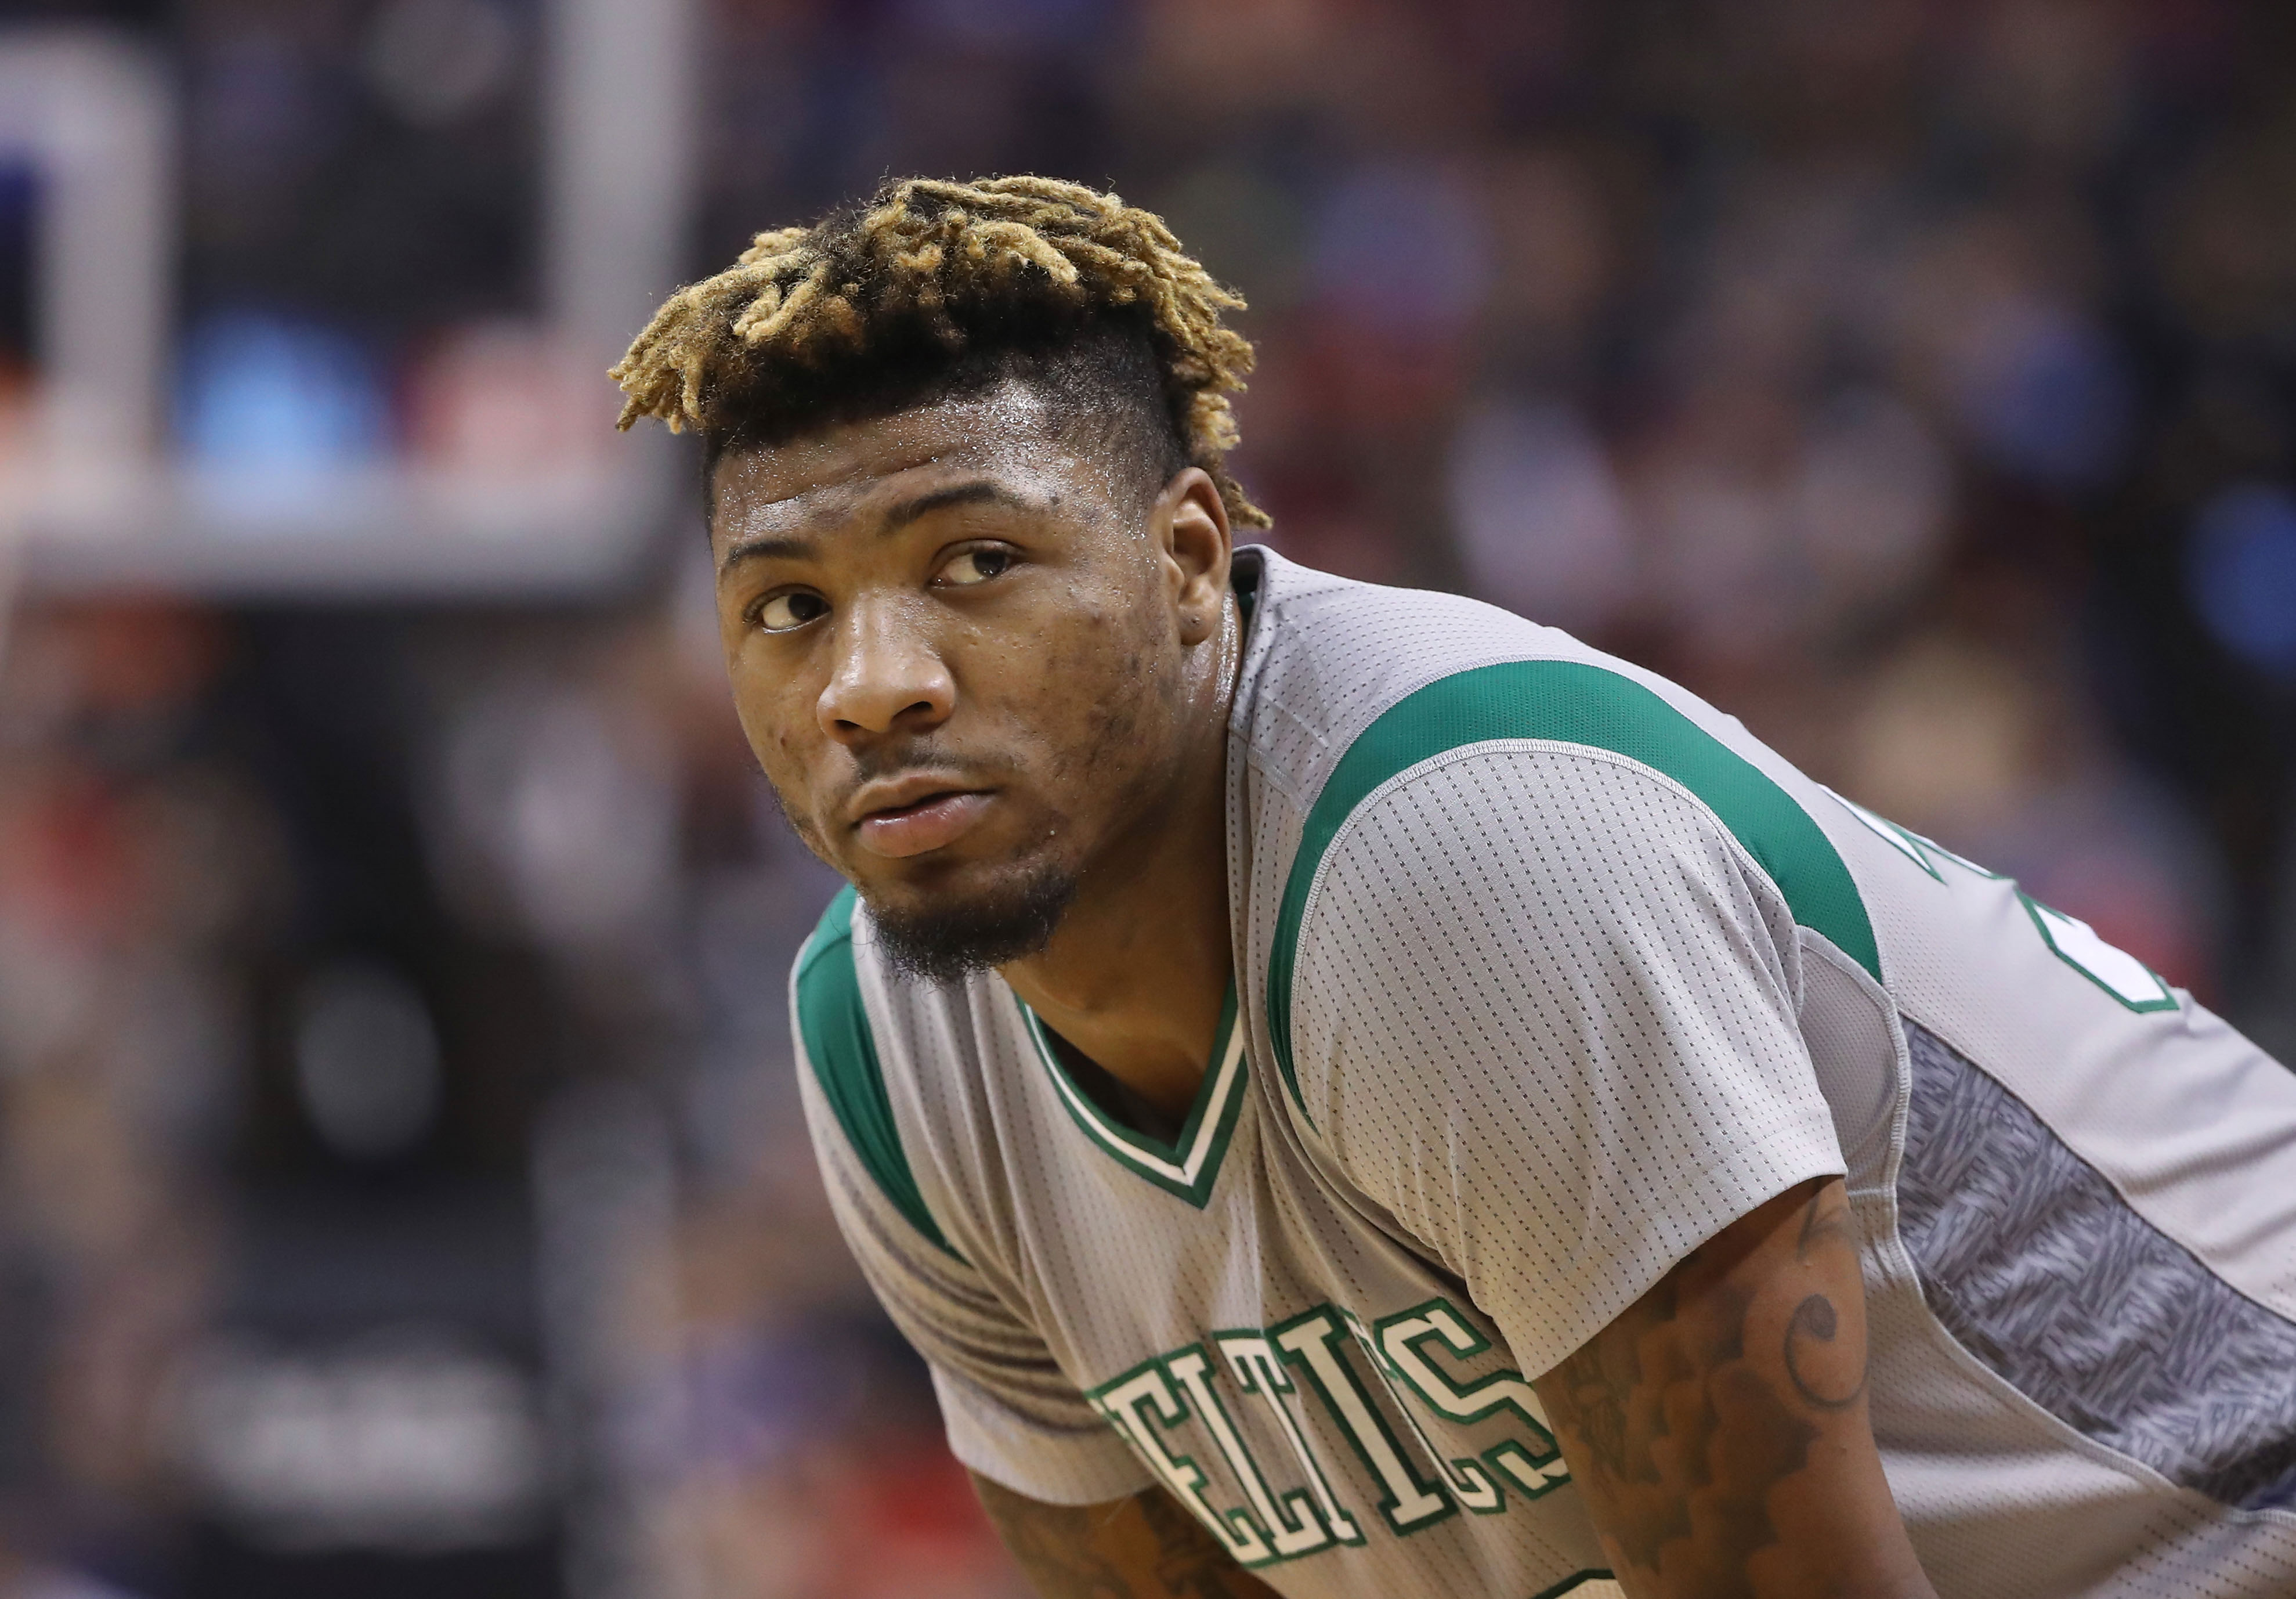 Jan 10, 2017; Toronto, Ontario, CAN; Boston Celtics point guard Marcus Smart (36) looks on against the Toronto Raptors at Air Canada Centre. The Raptors beat the Celtics 114-106. Mandatory Credit: Tom Szczerbowski-USA TODAY Sports